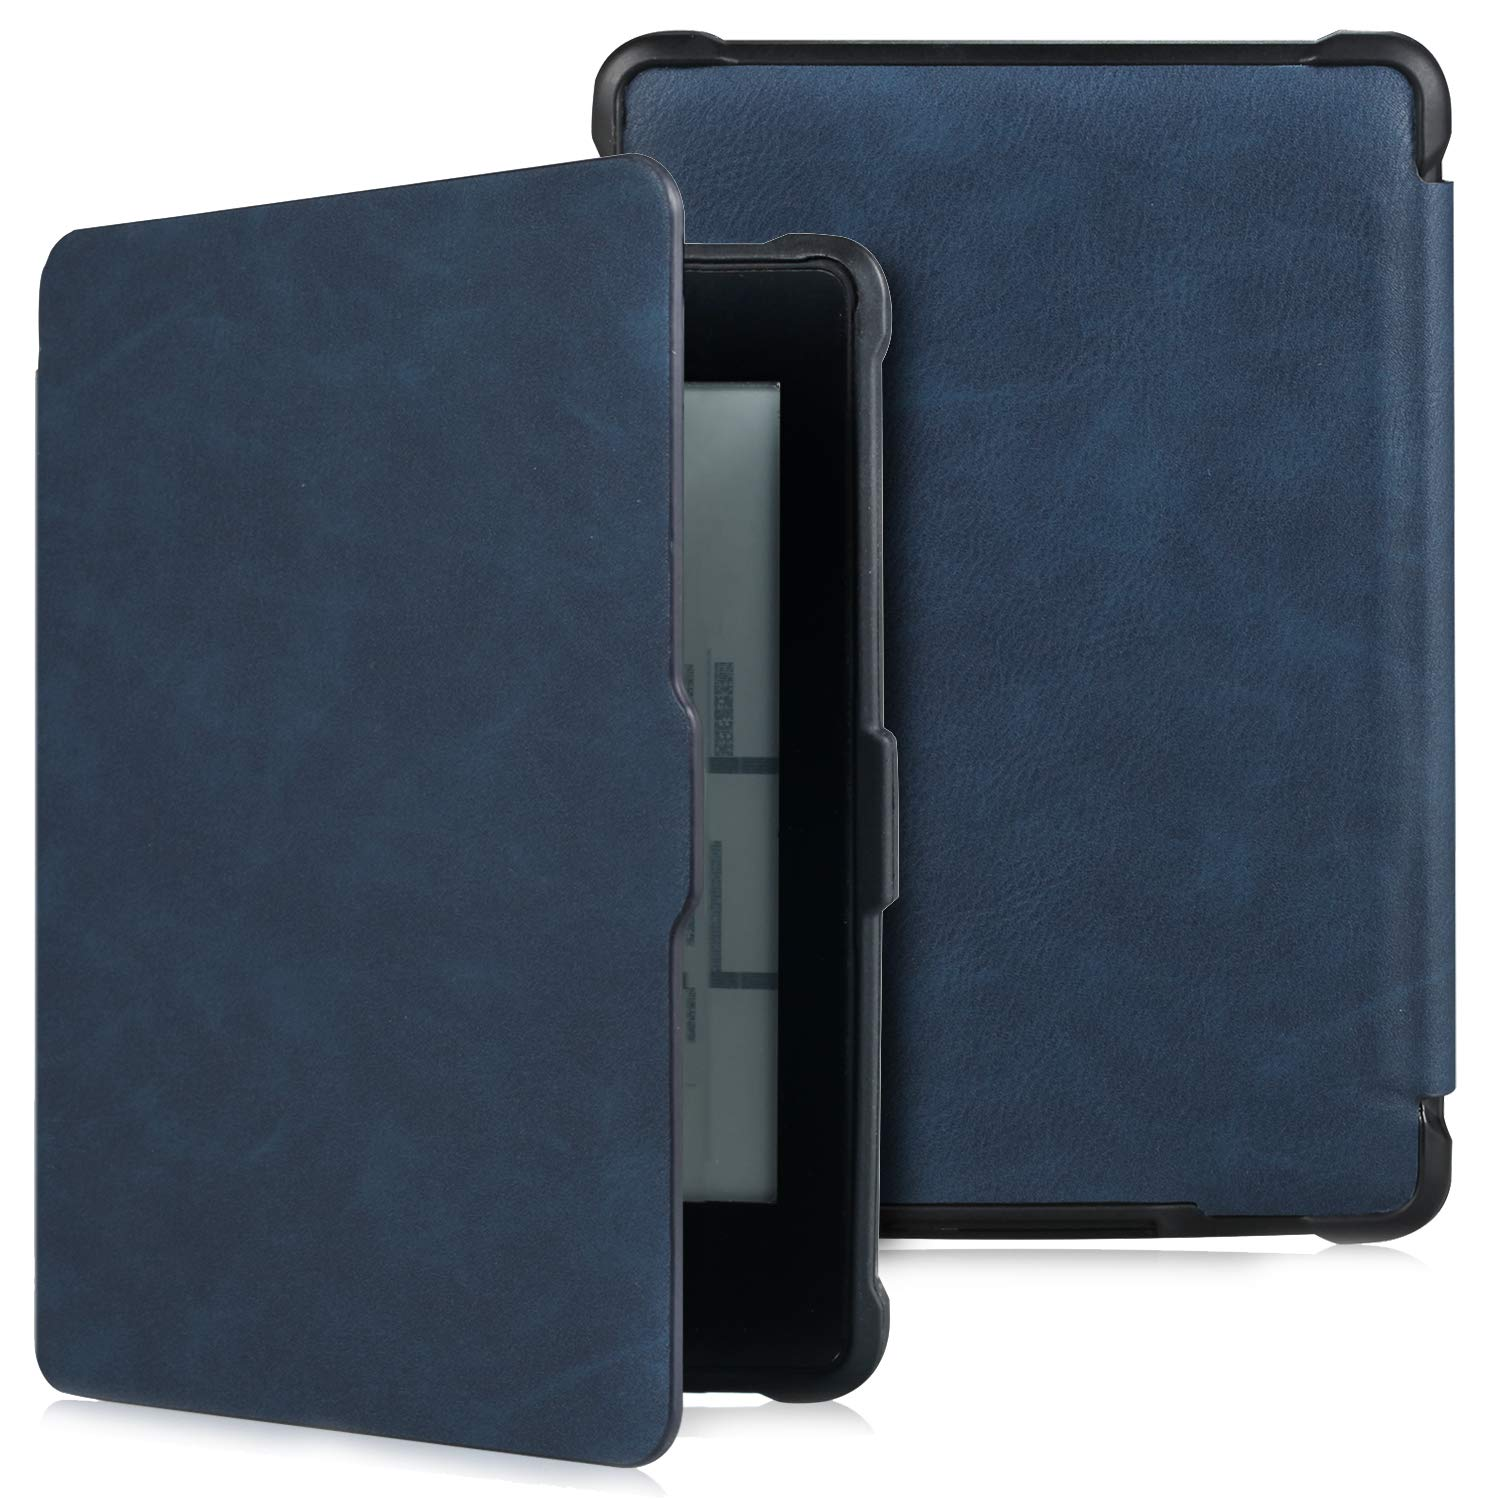 Case for Kindle Paperwhite -Premium Thinnest and Lightest PU Leather Cover With Auto Wake/Sleep for Amazon All-New Kindle Paperwhite (Fits 2012, 2013, 2015 Versions) Navy Blue